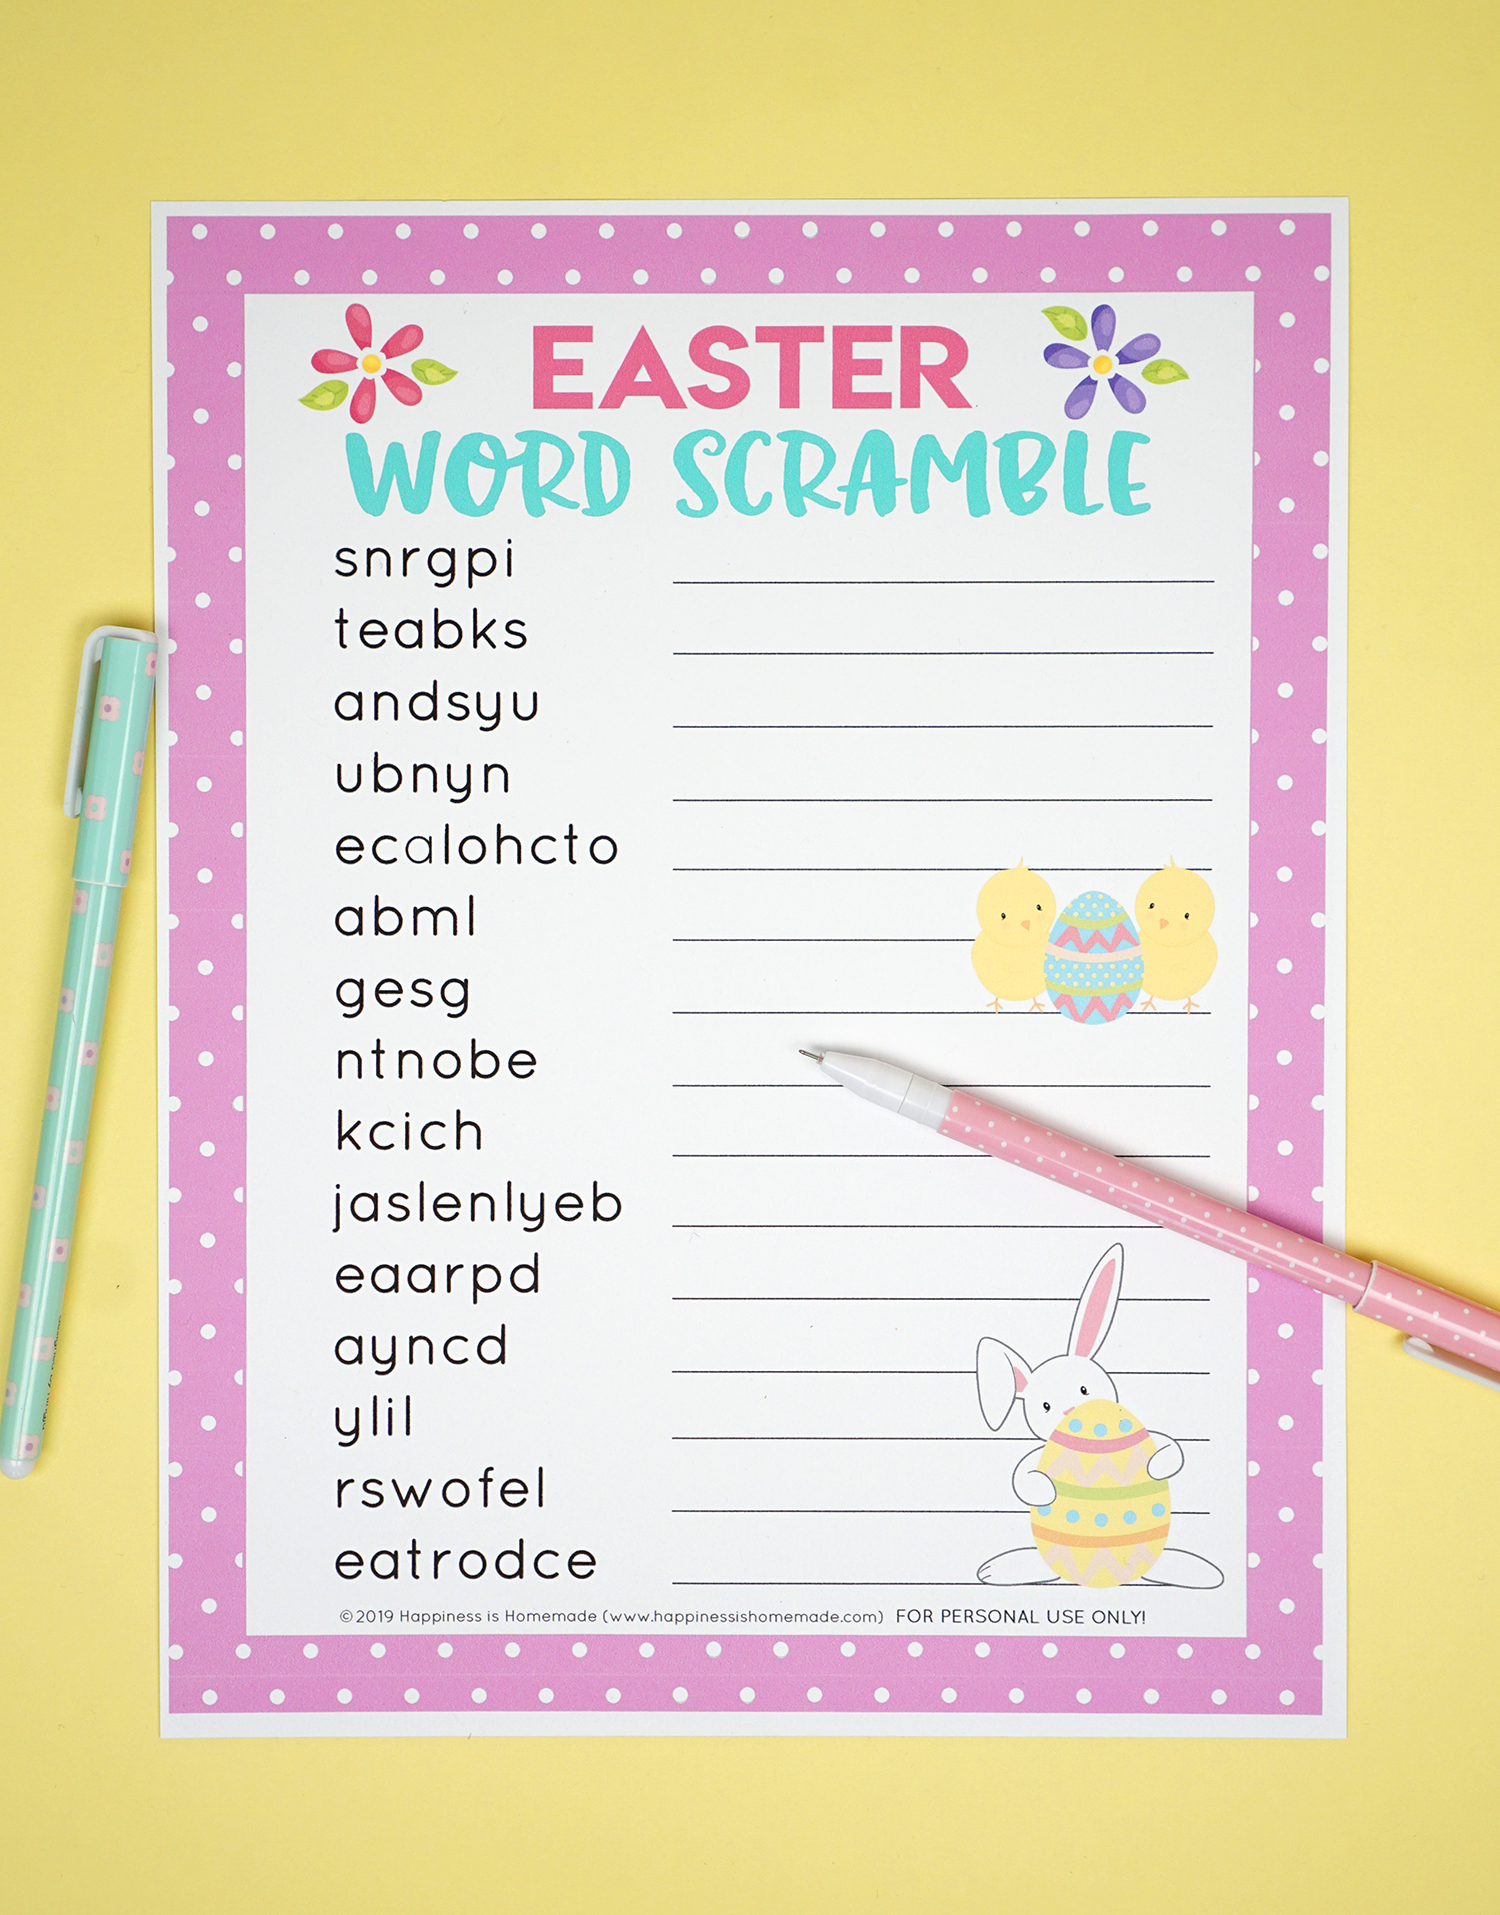 Easter Word Scramble Printable